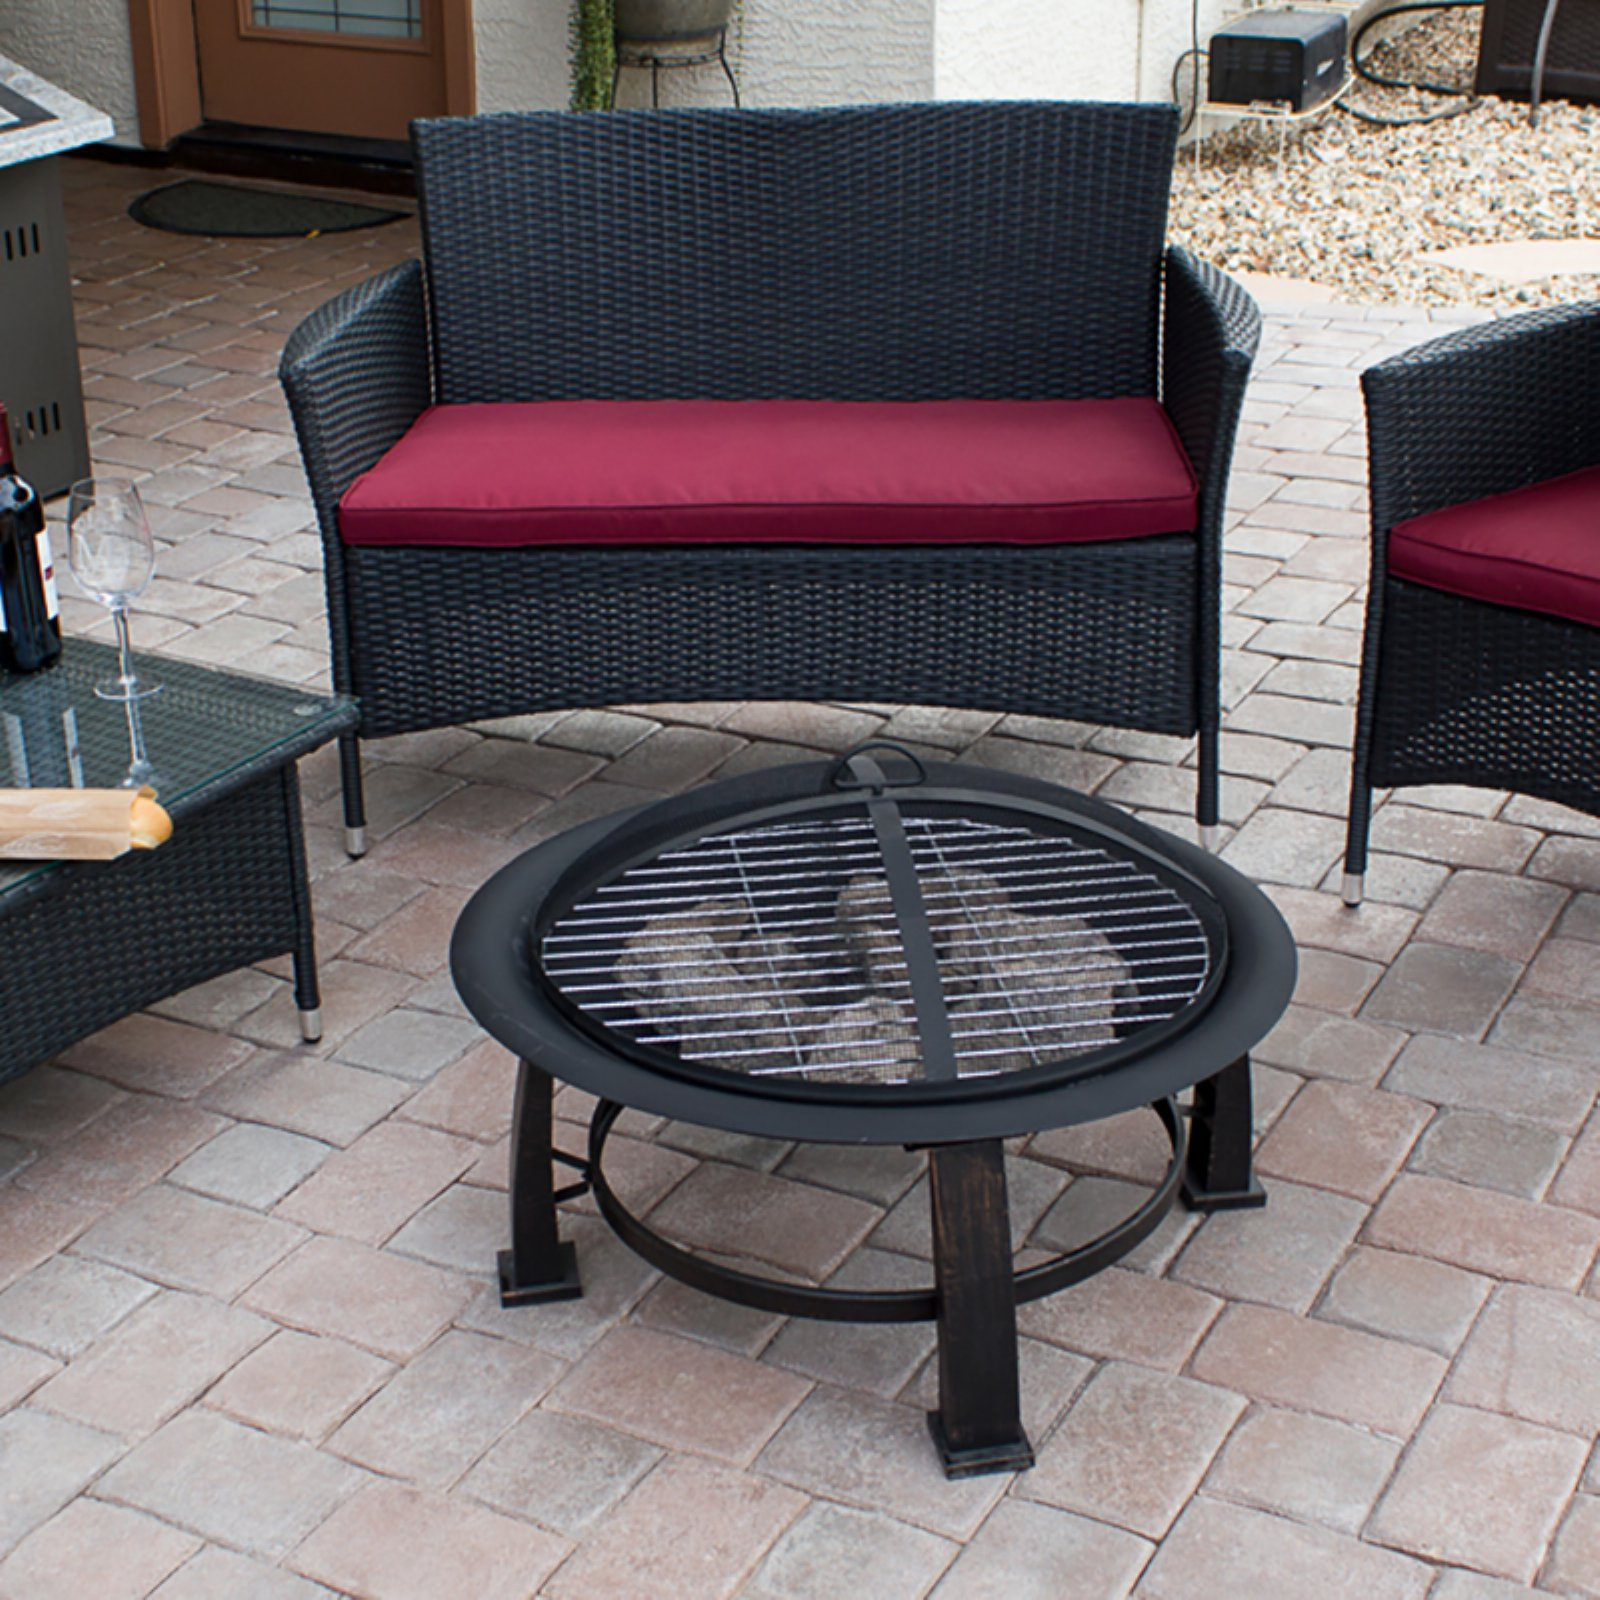 AZ Patio Heaters Wood Burning Firepit with Cooking Grate by AZ Patio Heaters LLC